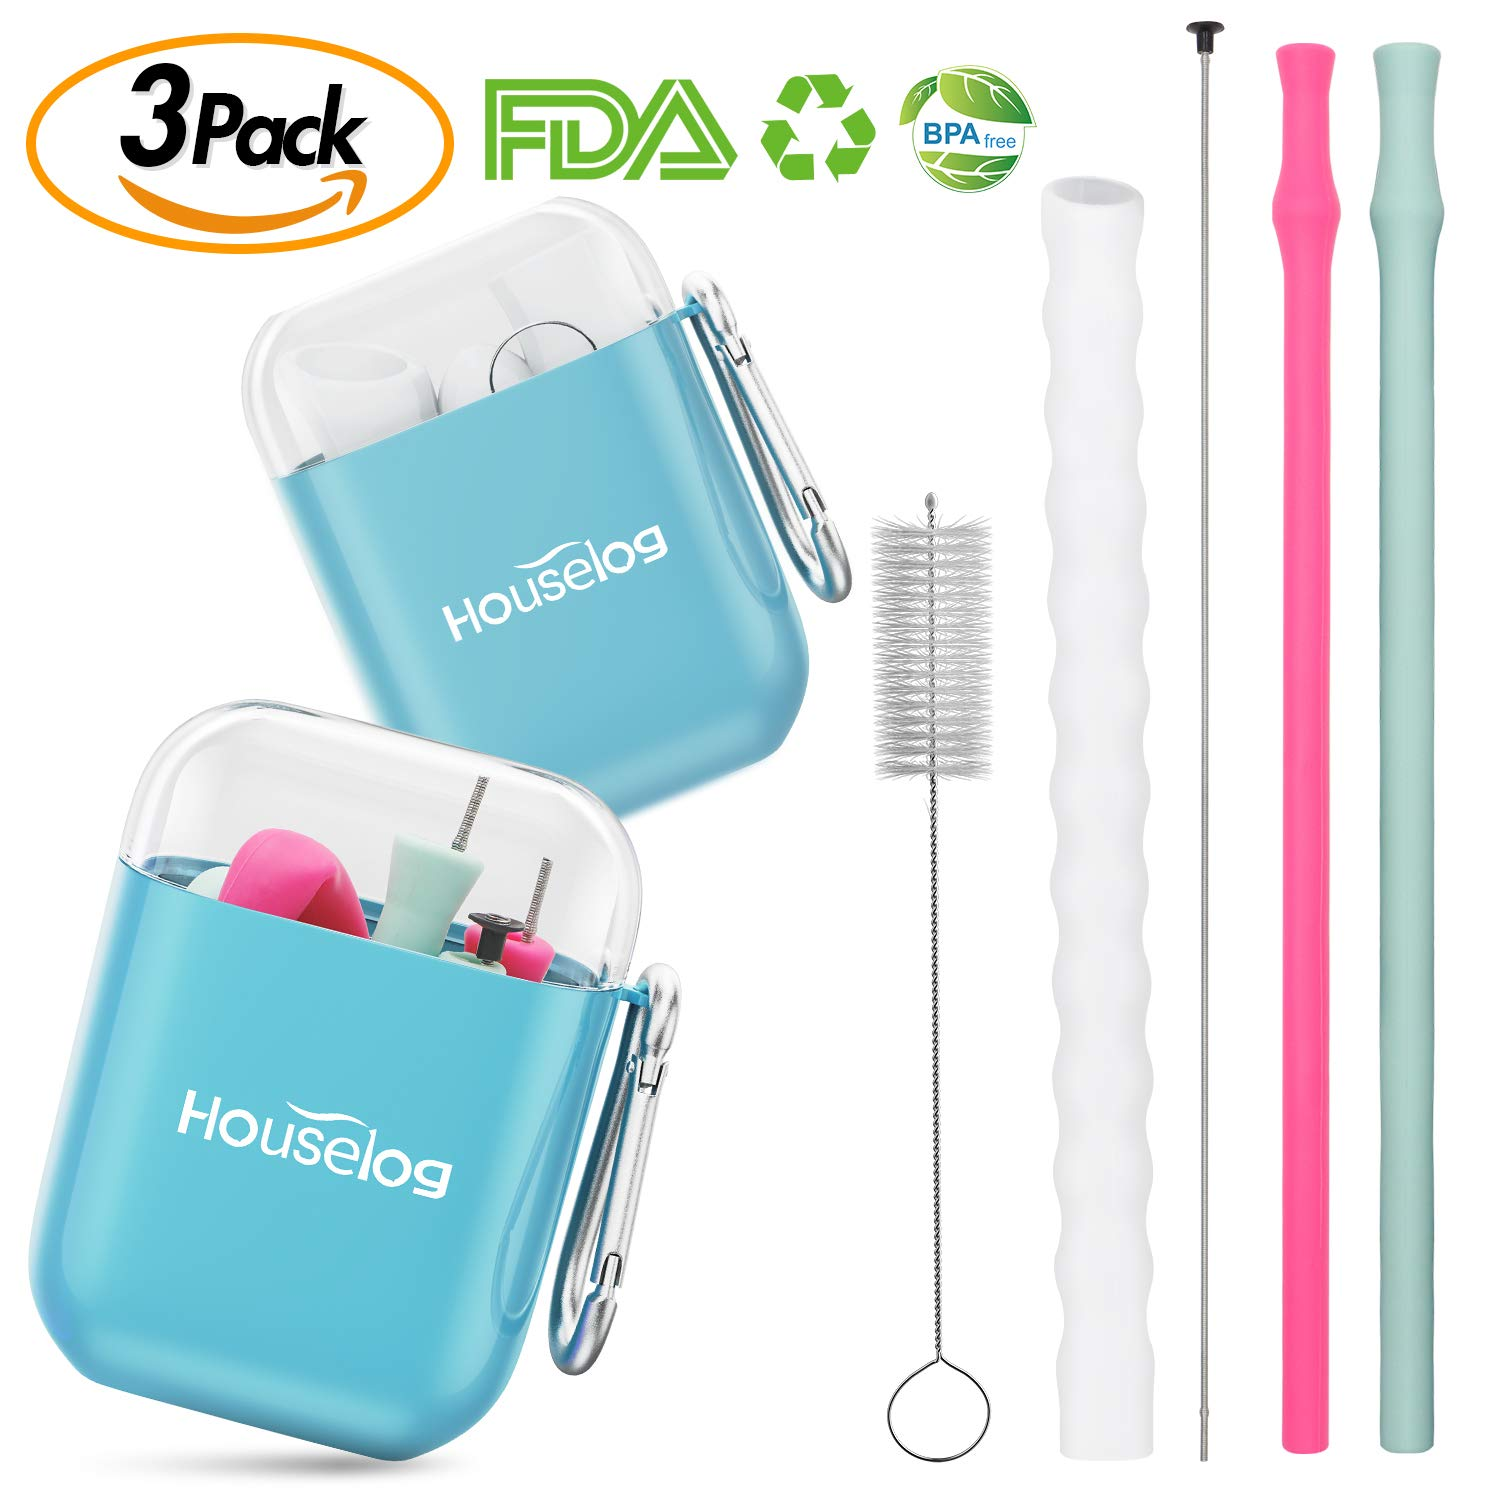 Houselog Silicone Reusable Straws,Small Large Size Collapsible Straw Cleaning Brush for Drink and Water 3PCS